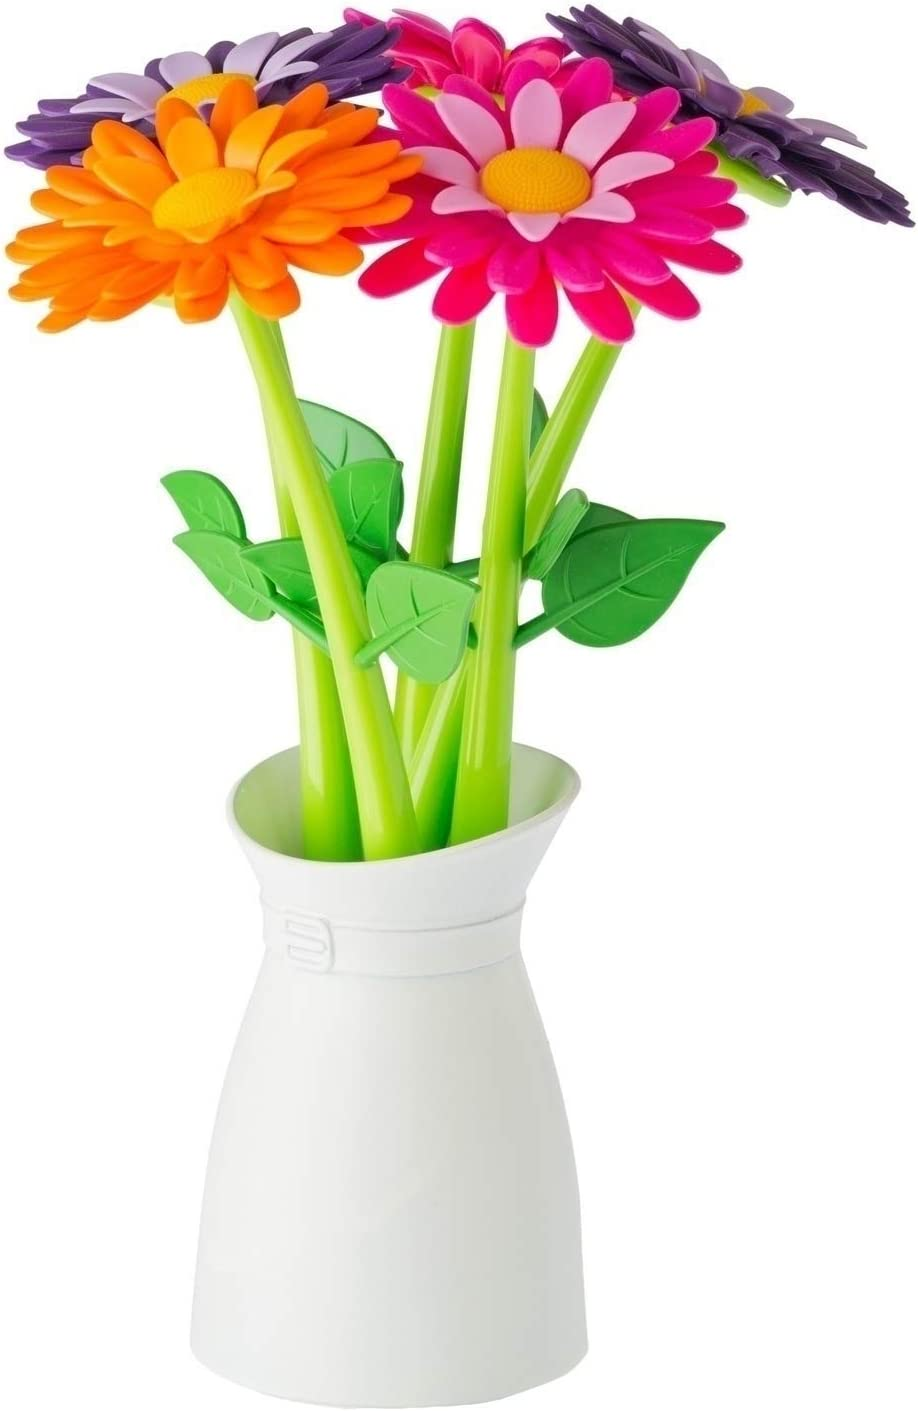 Vigar Flower Shop Pen Set with Vase, Set of 5 Colorful and Decorative Flower-Shaped Pens with Matching Holder